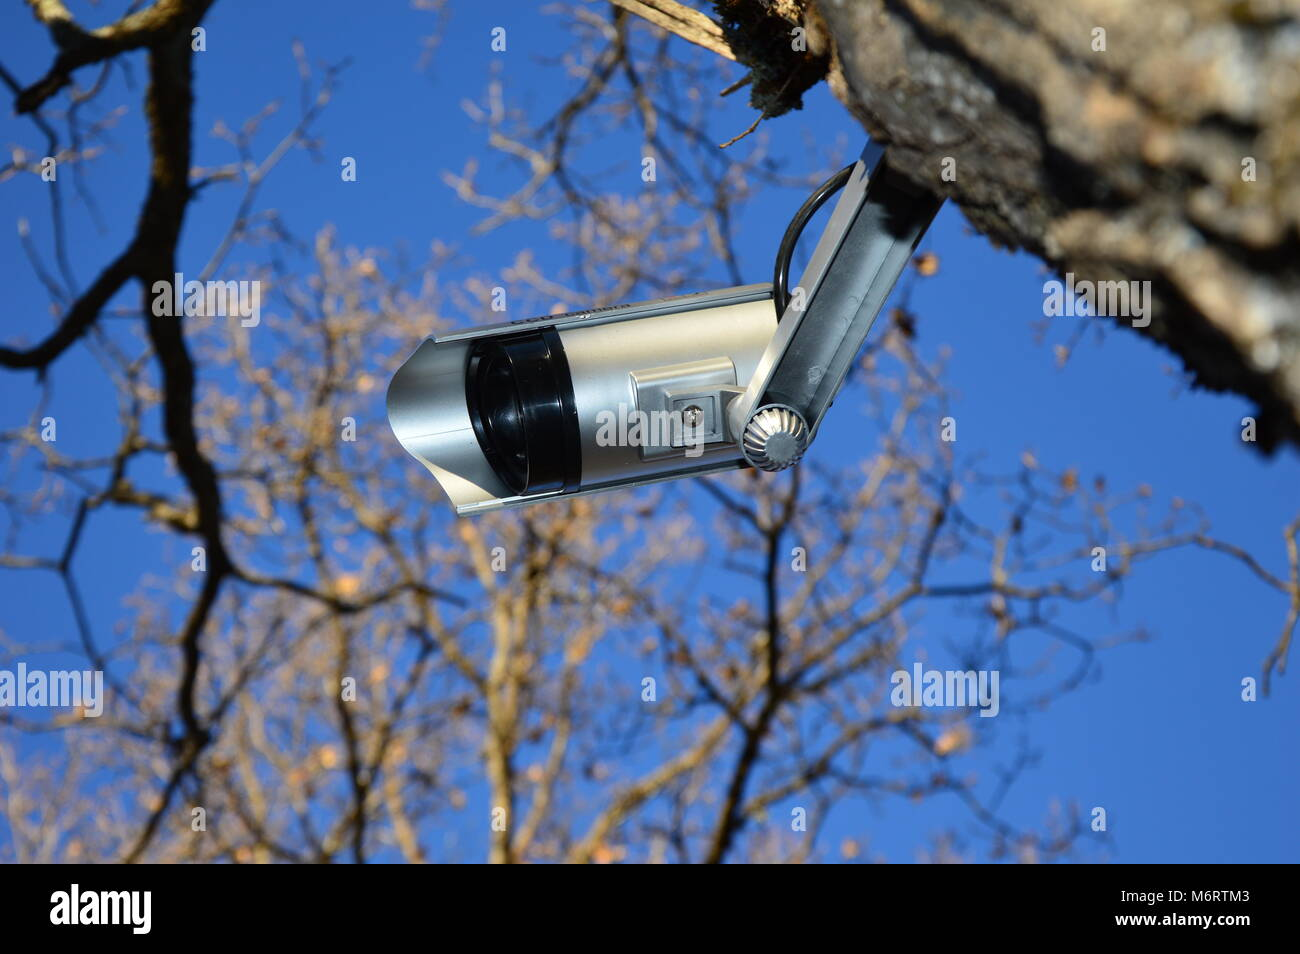 Zoom on a video surveillance camera with blue sky background - Stock Image